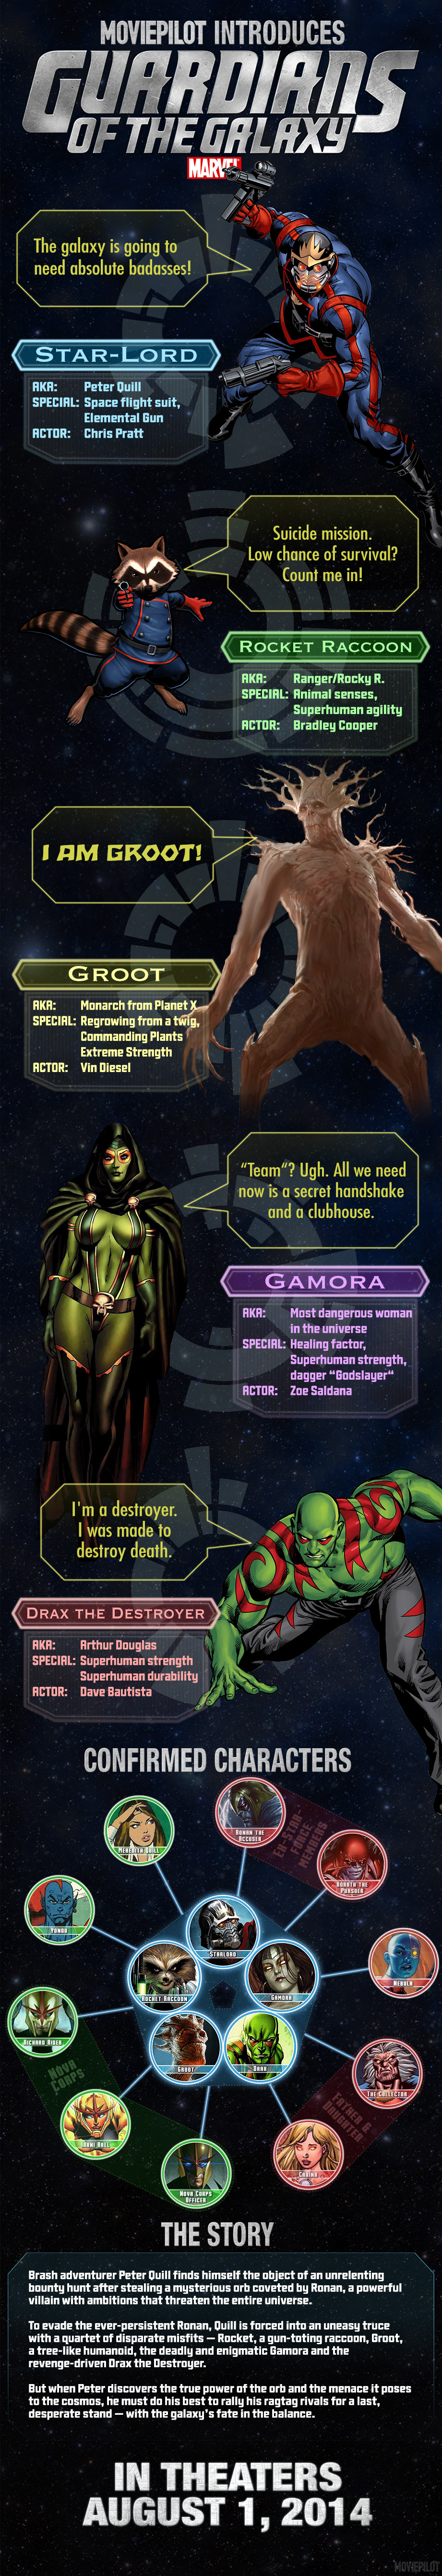 Guardians-of-the-Galaxy-Infographic.jpg 921×5,368 pixels